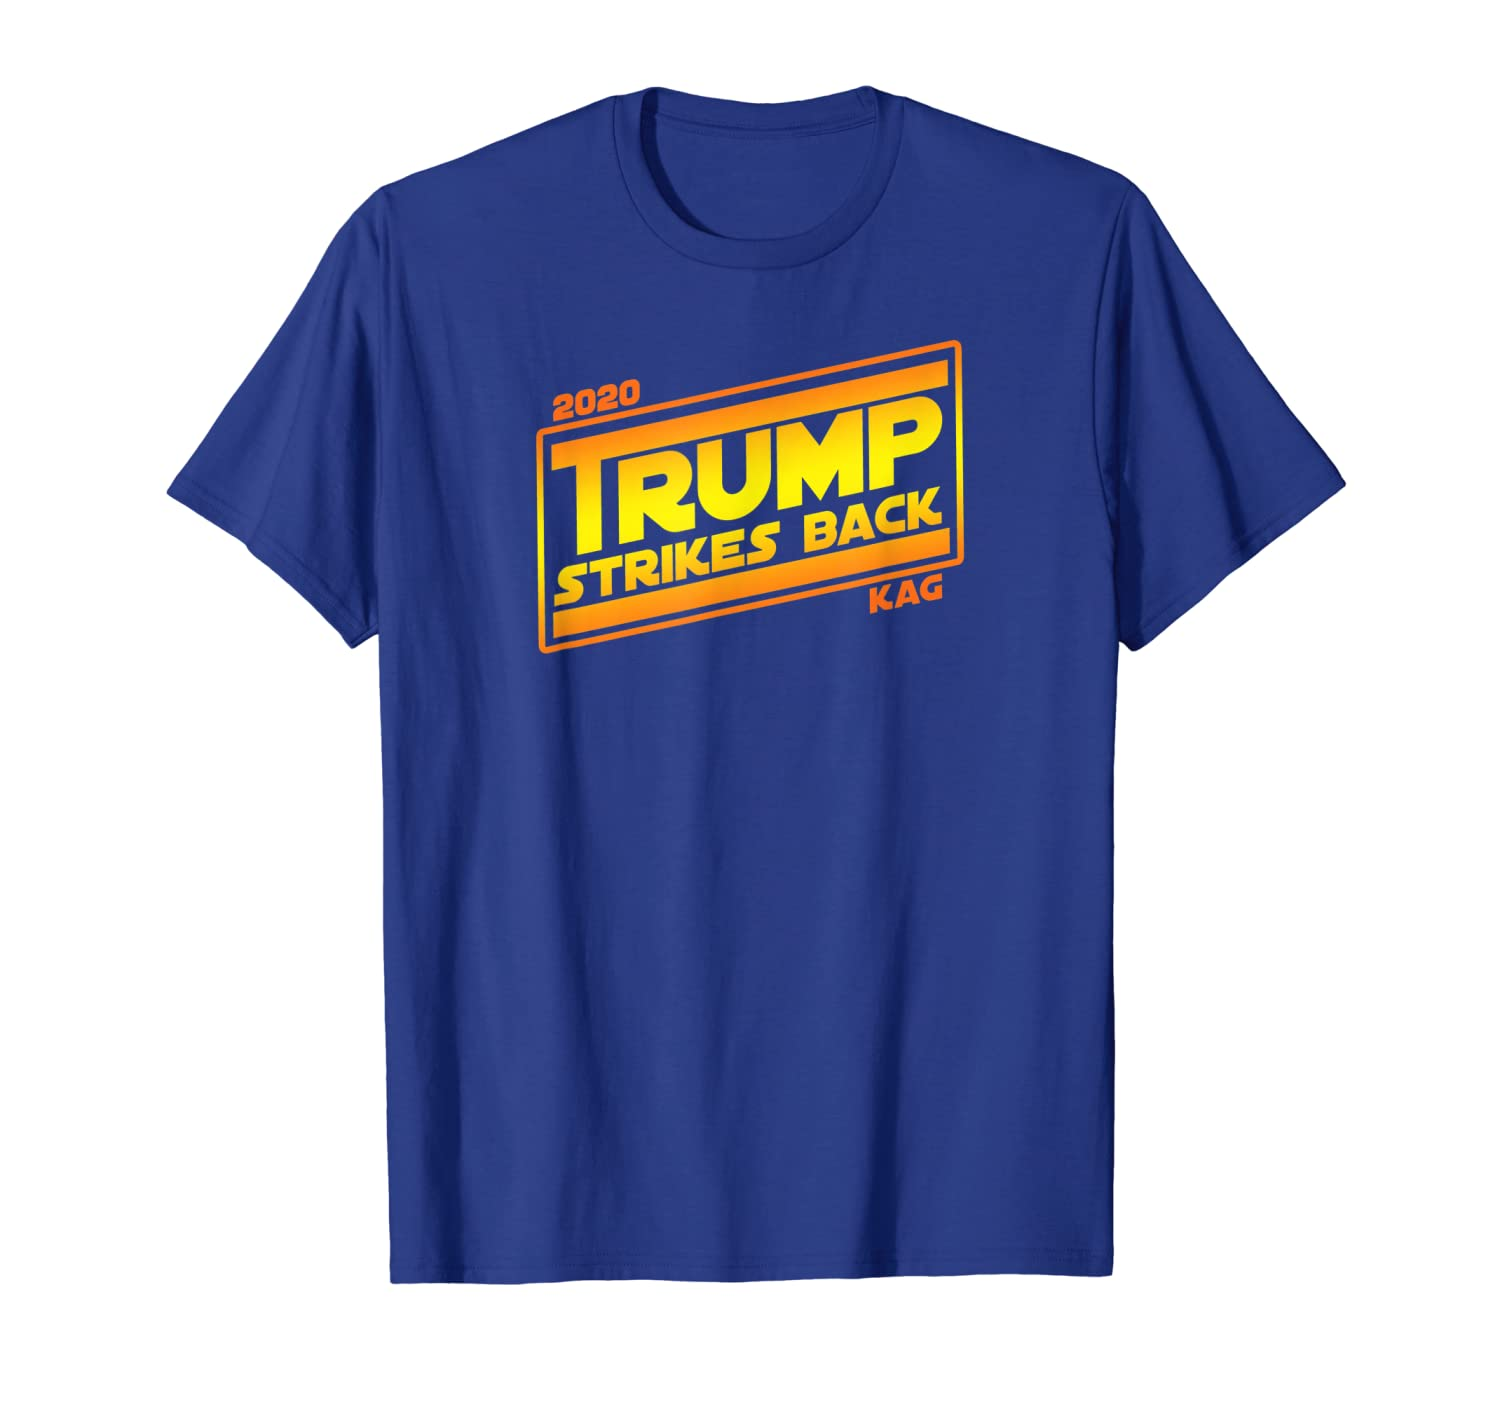 2020 TRUMP STRIKES BACK KAG Funny Political T-shirt Ver. 1C-TH